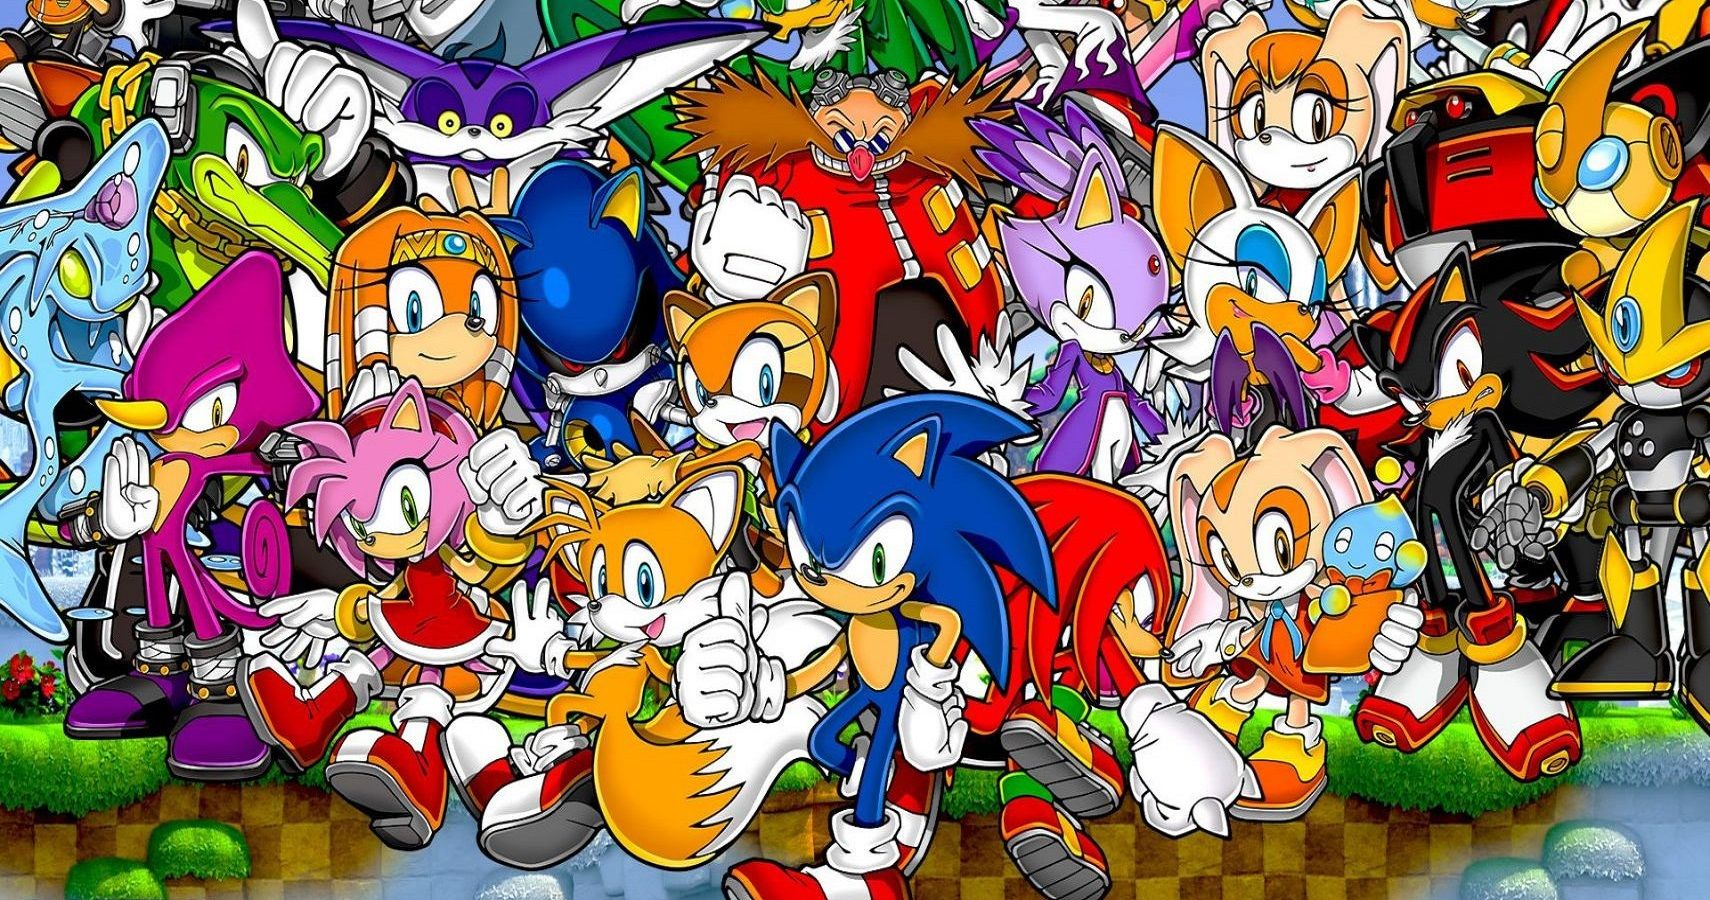 10 Best Sonic The Hedgehog Characters Of All Time Ranked